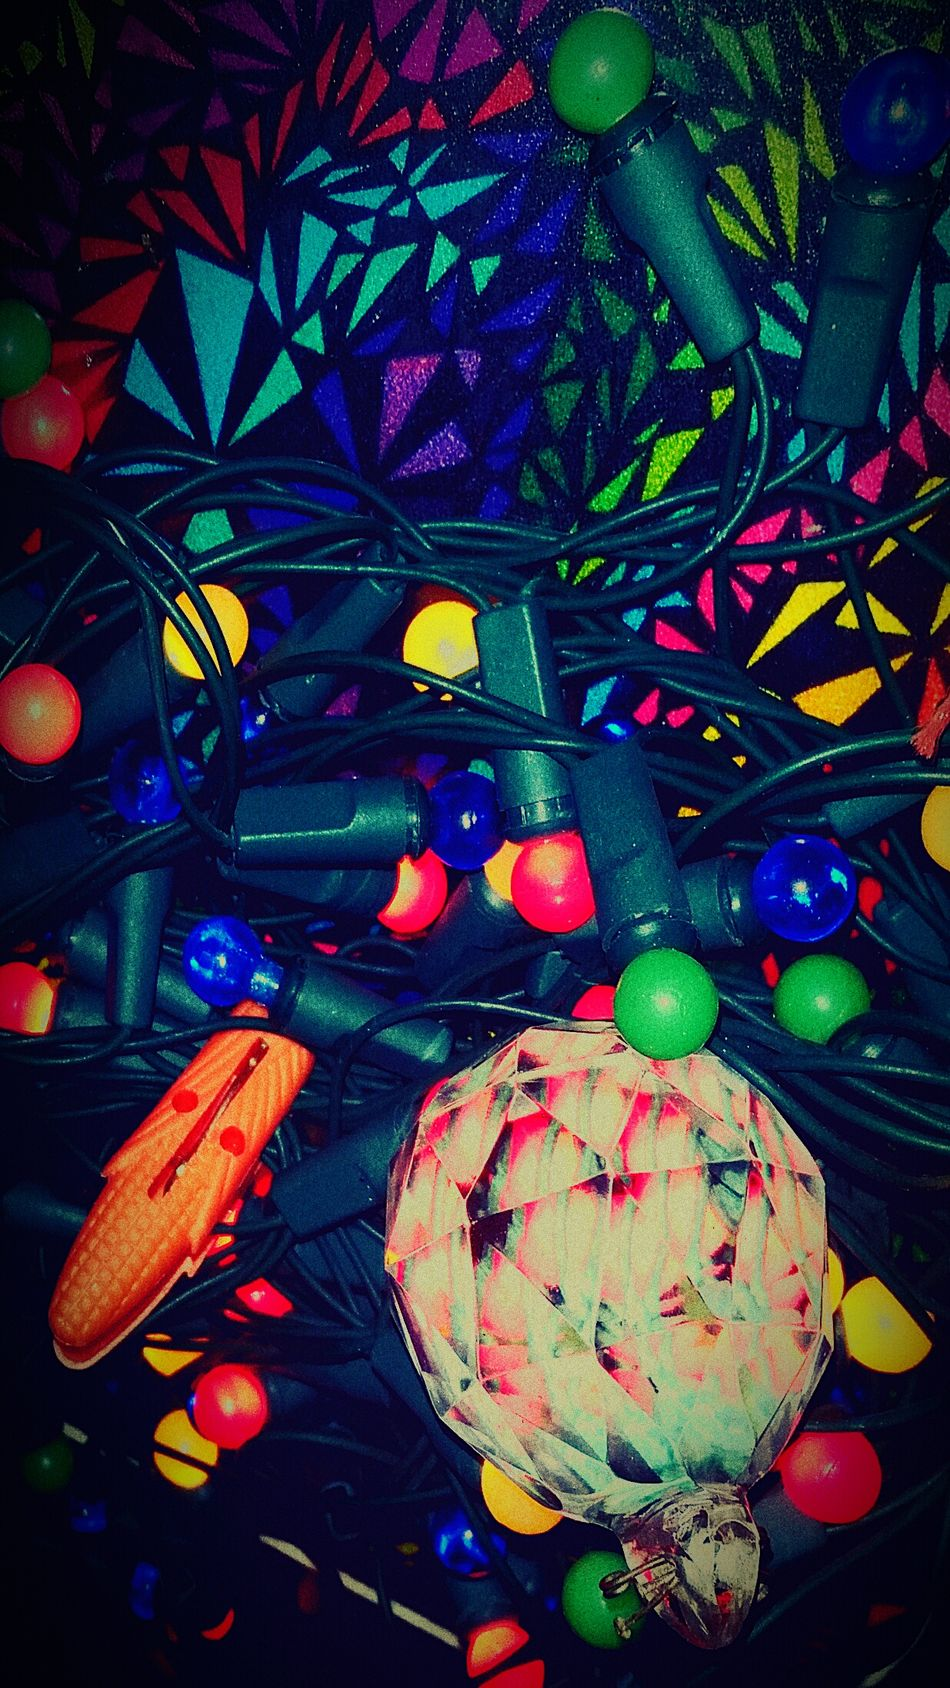 Automaton Multi Colored No People Celebration Close-up Christmas Decoration Indoors  Christmas Ornament Day Clown Crystal Ball Crystalball Crystals Crystal Celebration Nightclub Reflection Sphere Crystalline Drawing Abstraction Science Fiction Scifi Drawings Drawing ✏ Draw